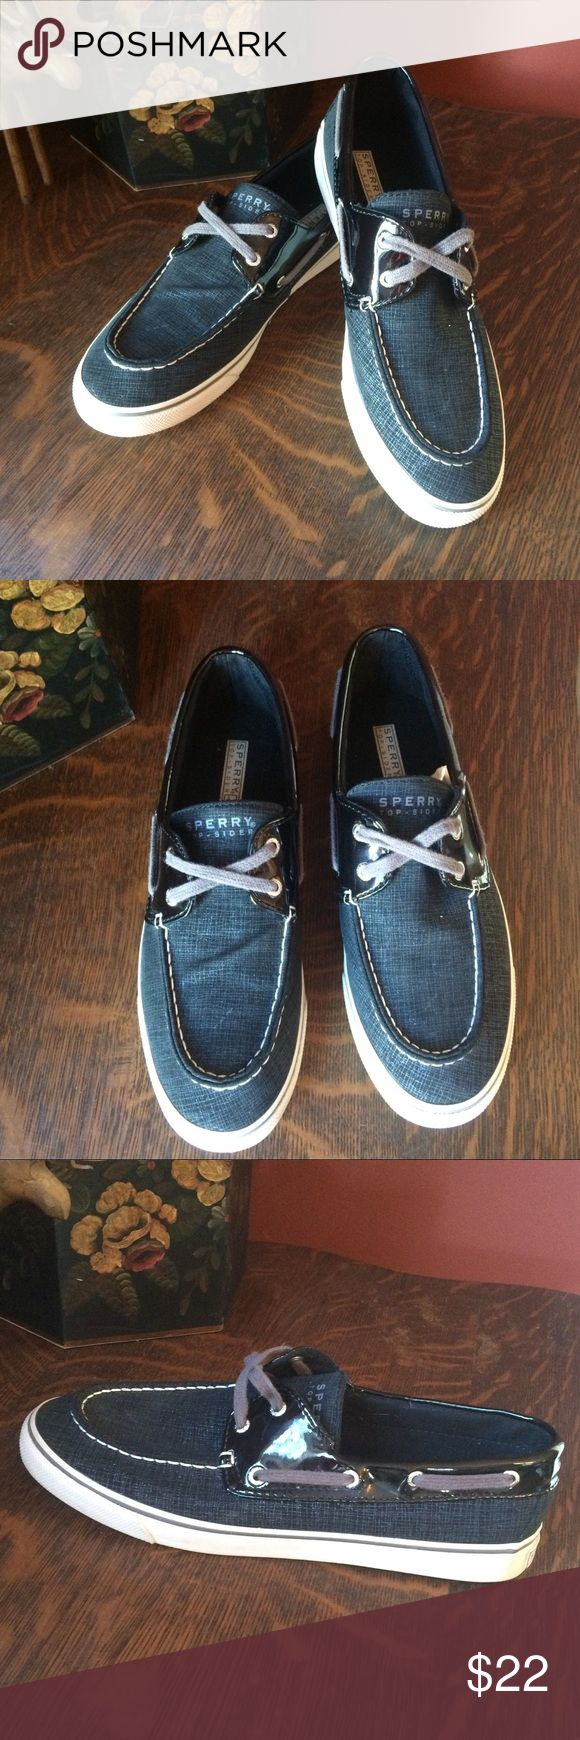 Sperry Woman's Boat Shoes/Sneakers Sperry Biscayne Black Boat Shoe/Sneakers. Classic Sperry styling.  Good condition.   Mostly synthetic uppers.   Size 10  10092 Sperry Shoes Flats & Loafers